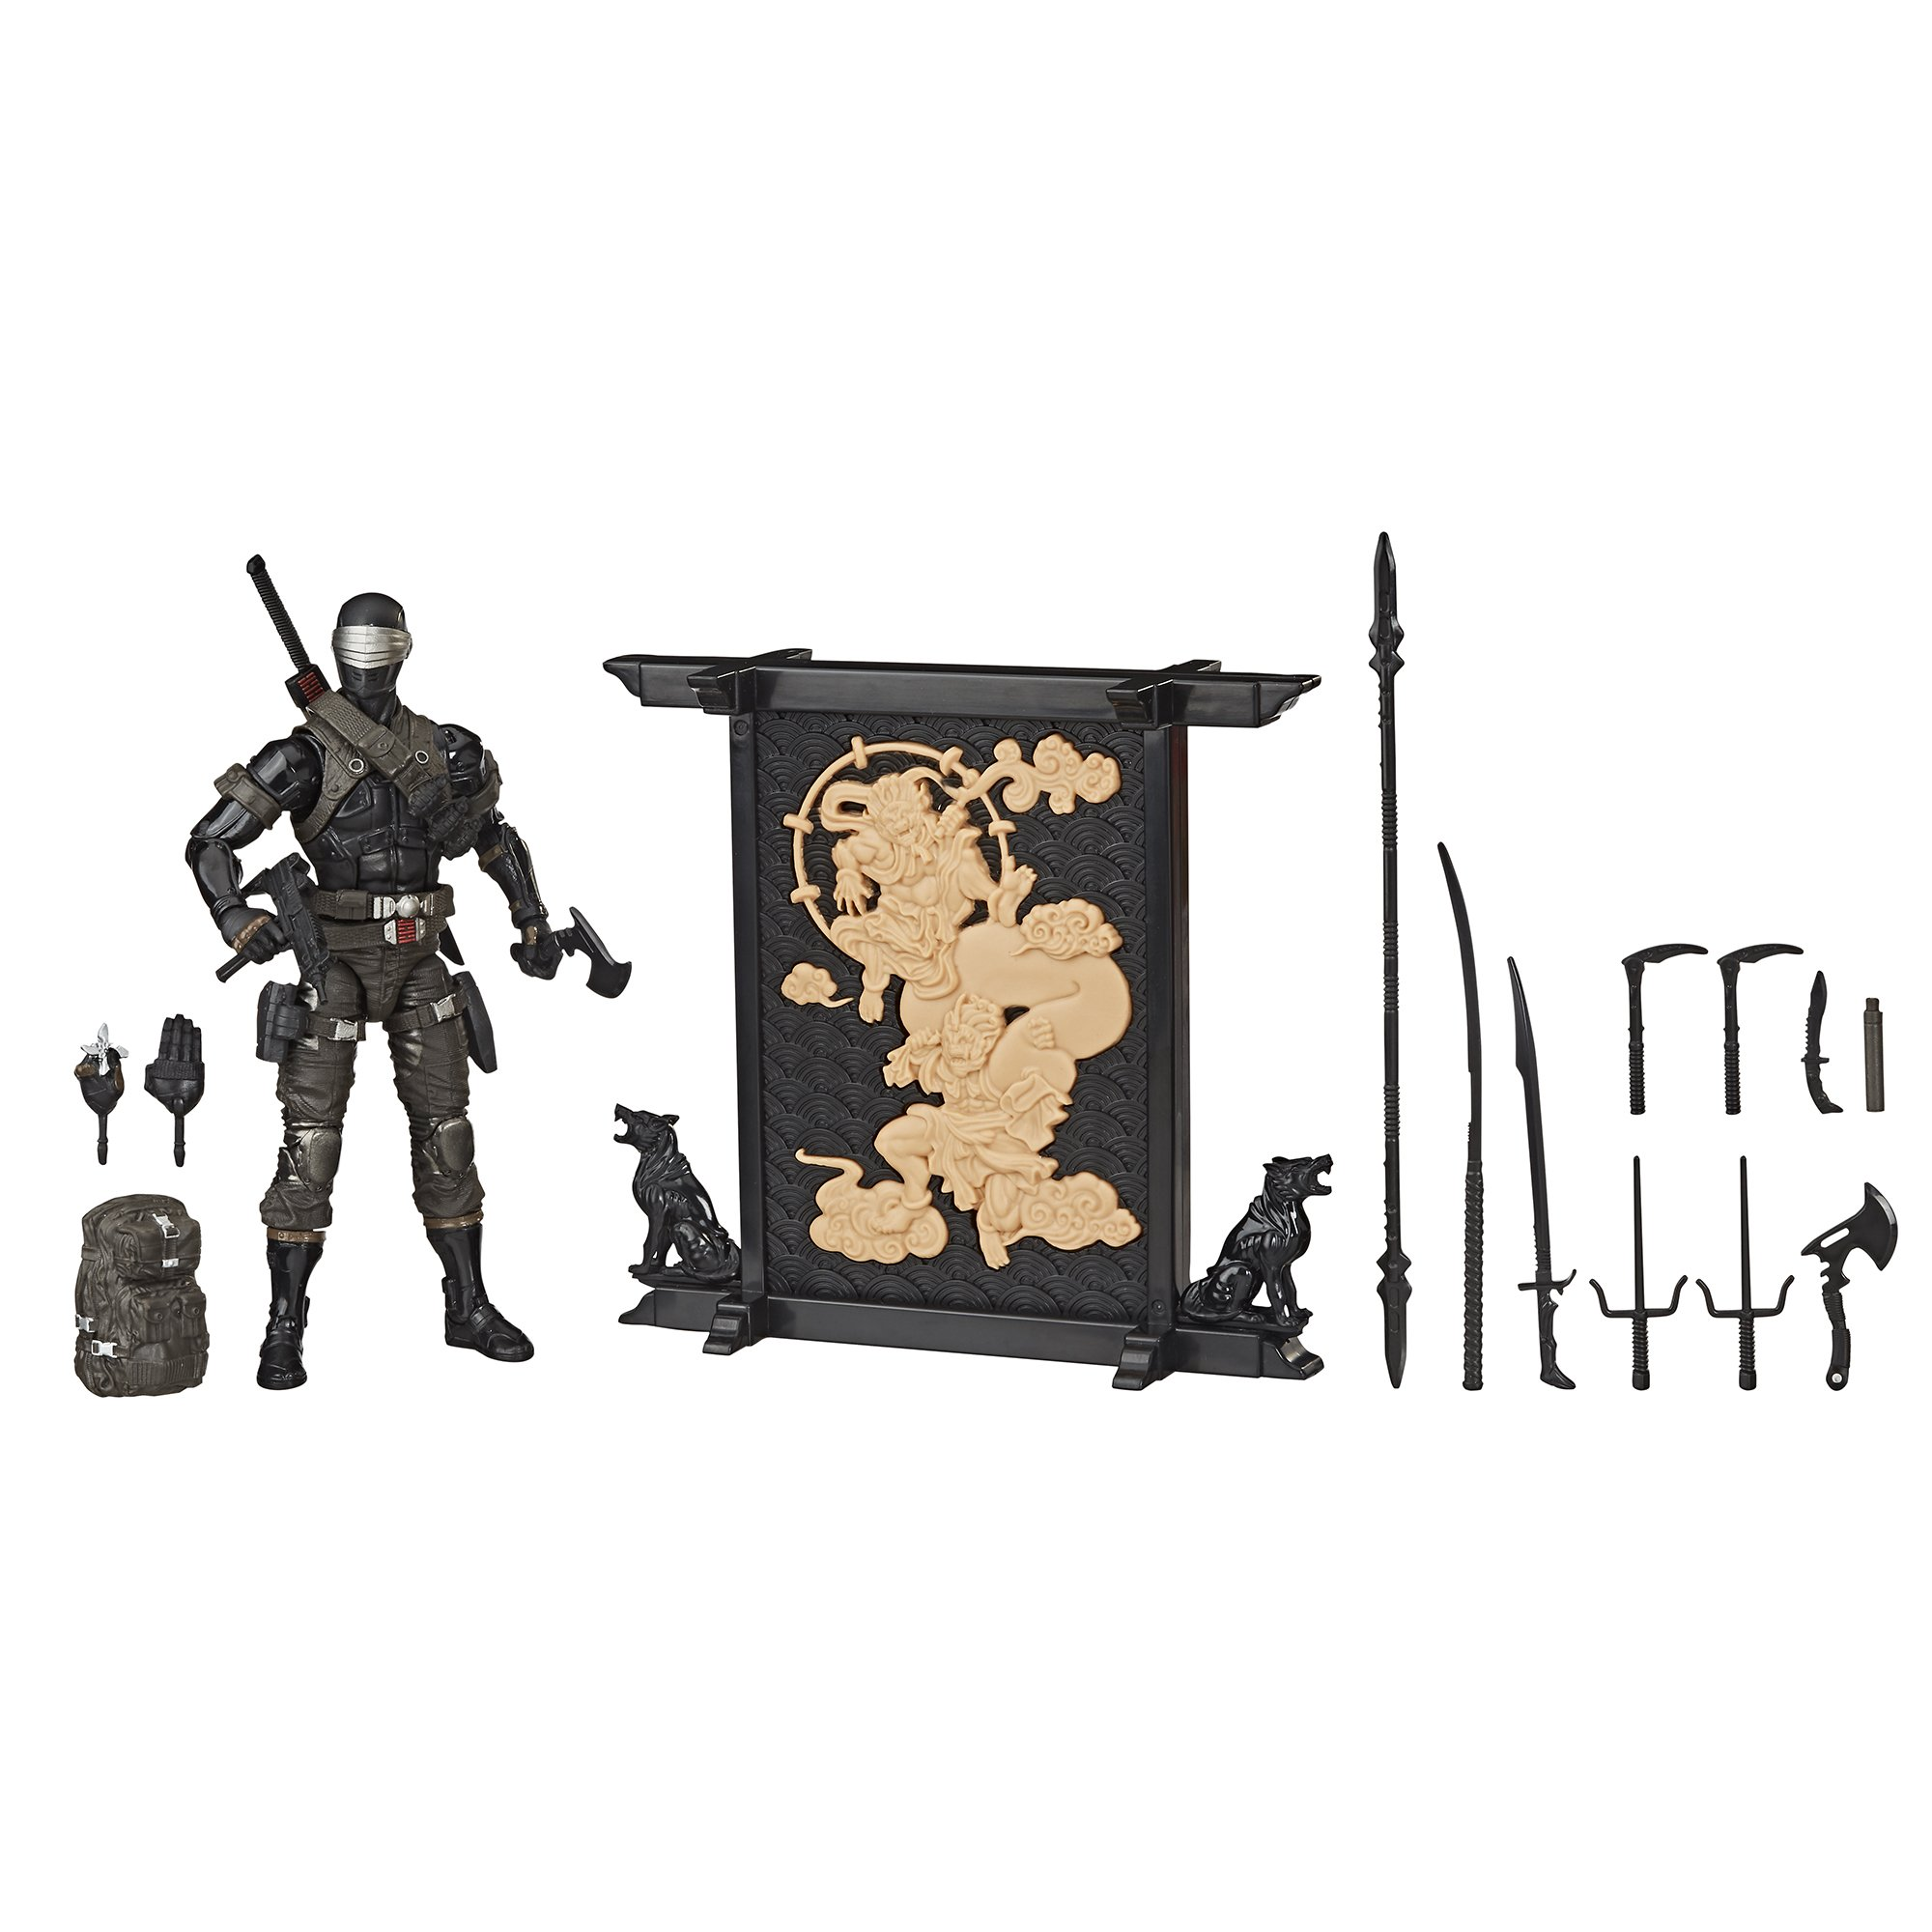 G.I. Joe Classified Snake Eyes Deluxe Action Figure Coming From Hasbro